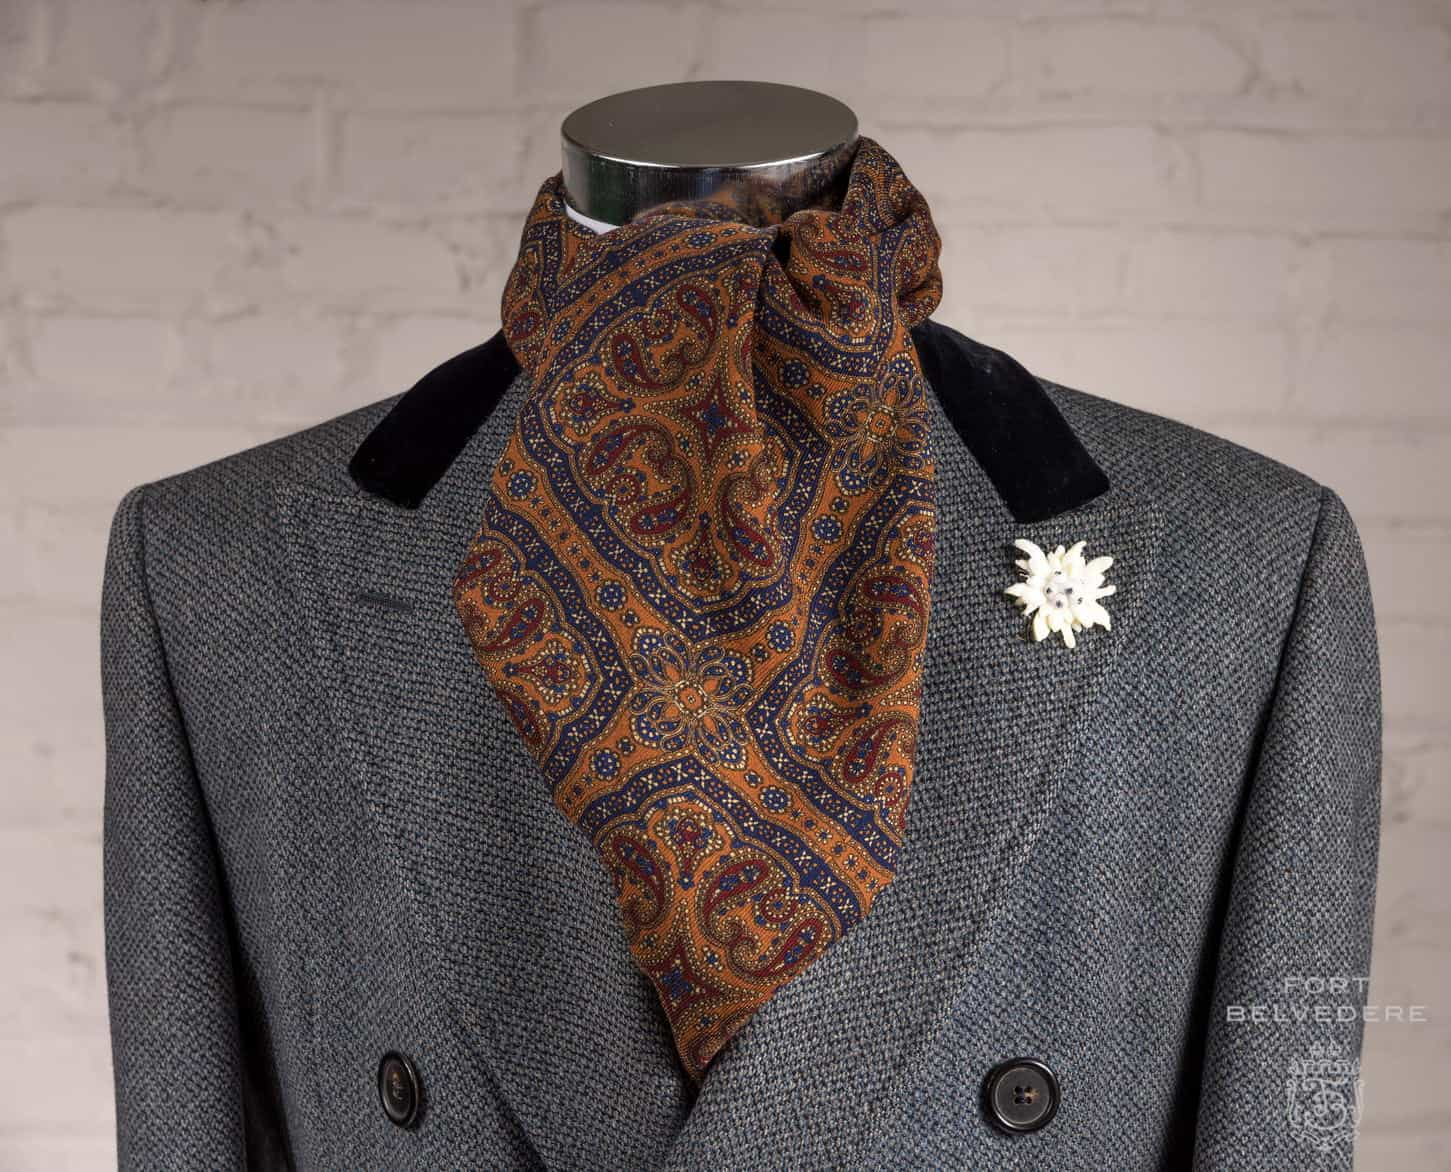 Edelweiss Boutonniere Double Sided Wool Silk Orange, Red & Blue Pattern & Checks Scarf by Fort Belvedere